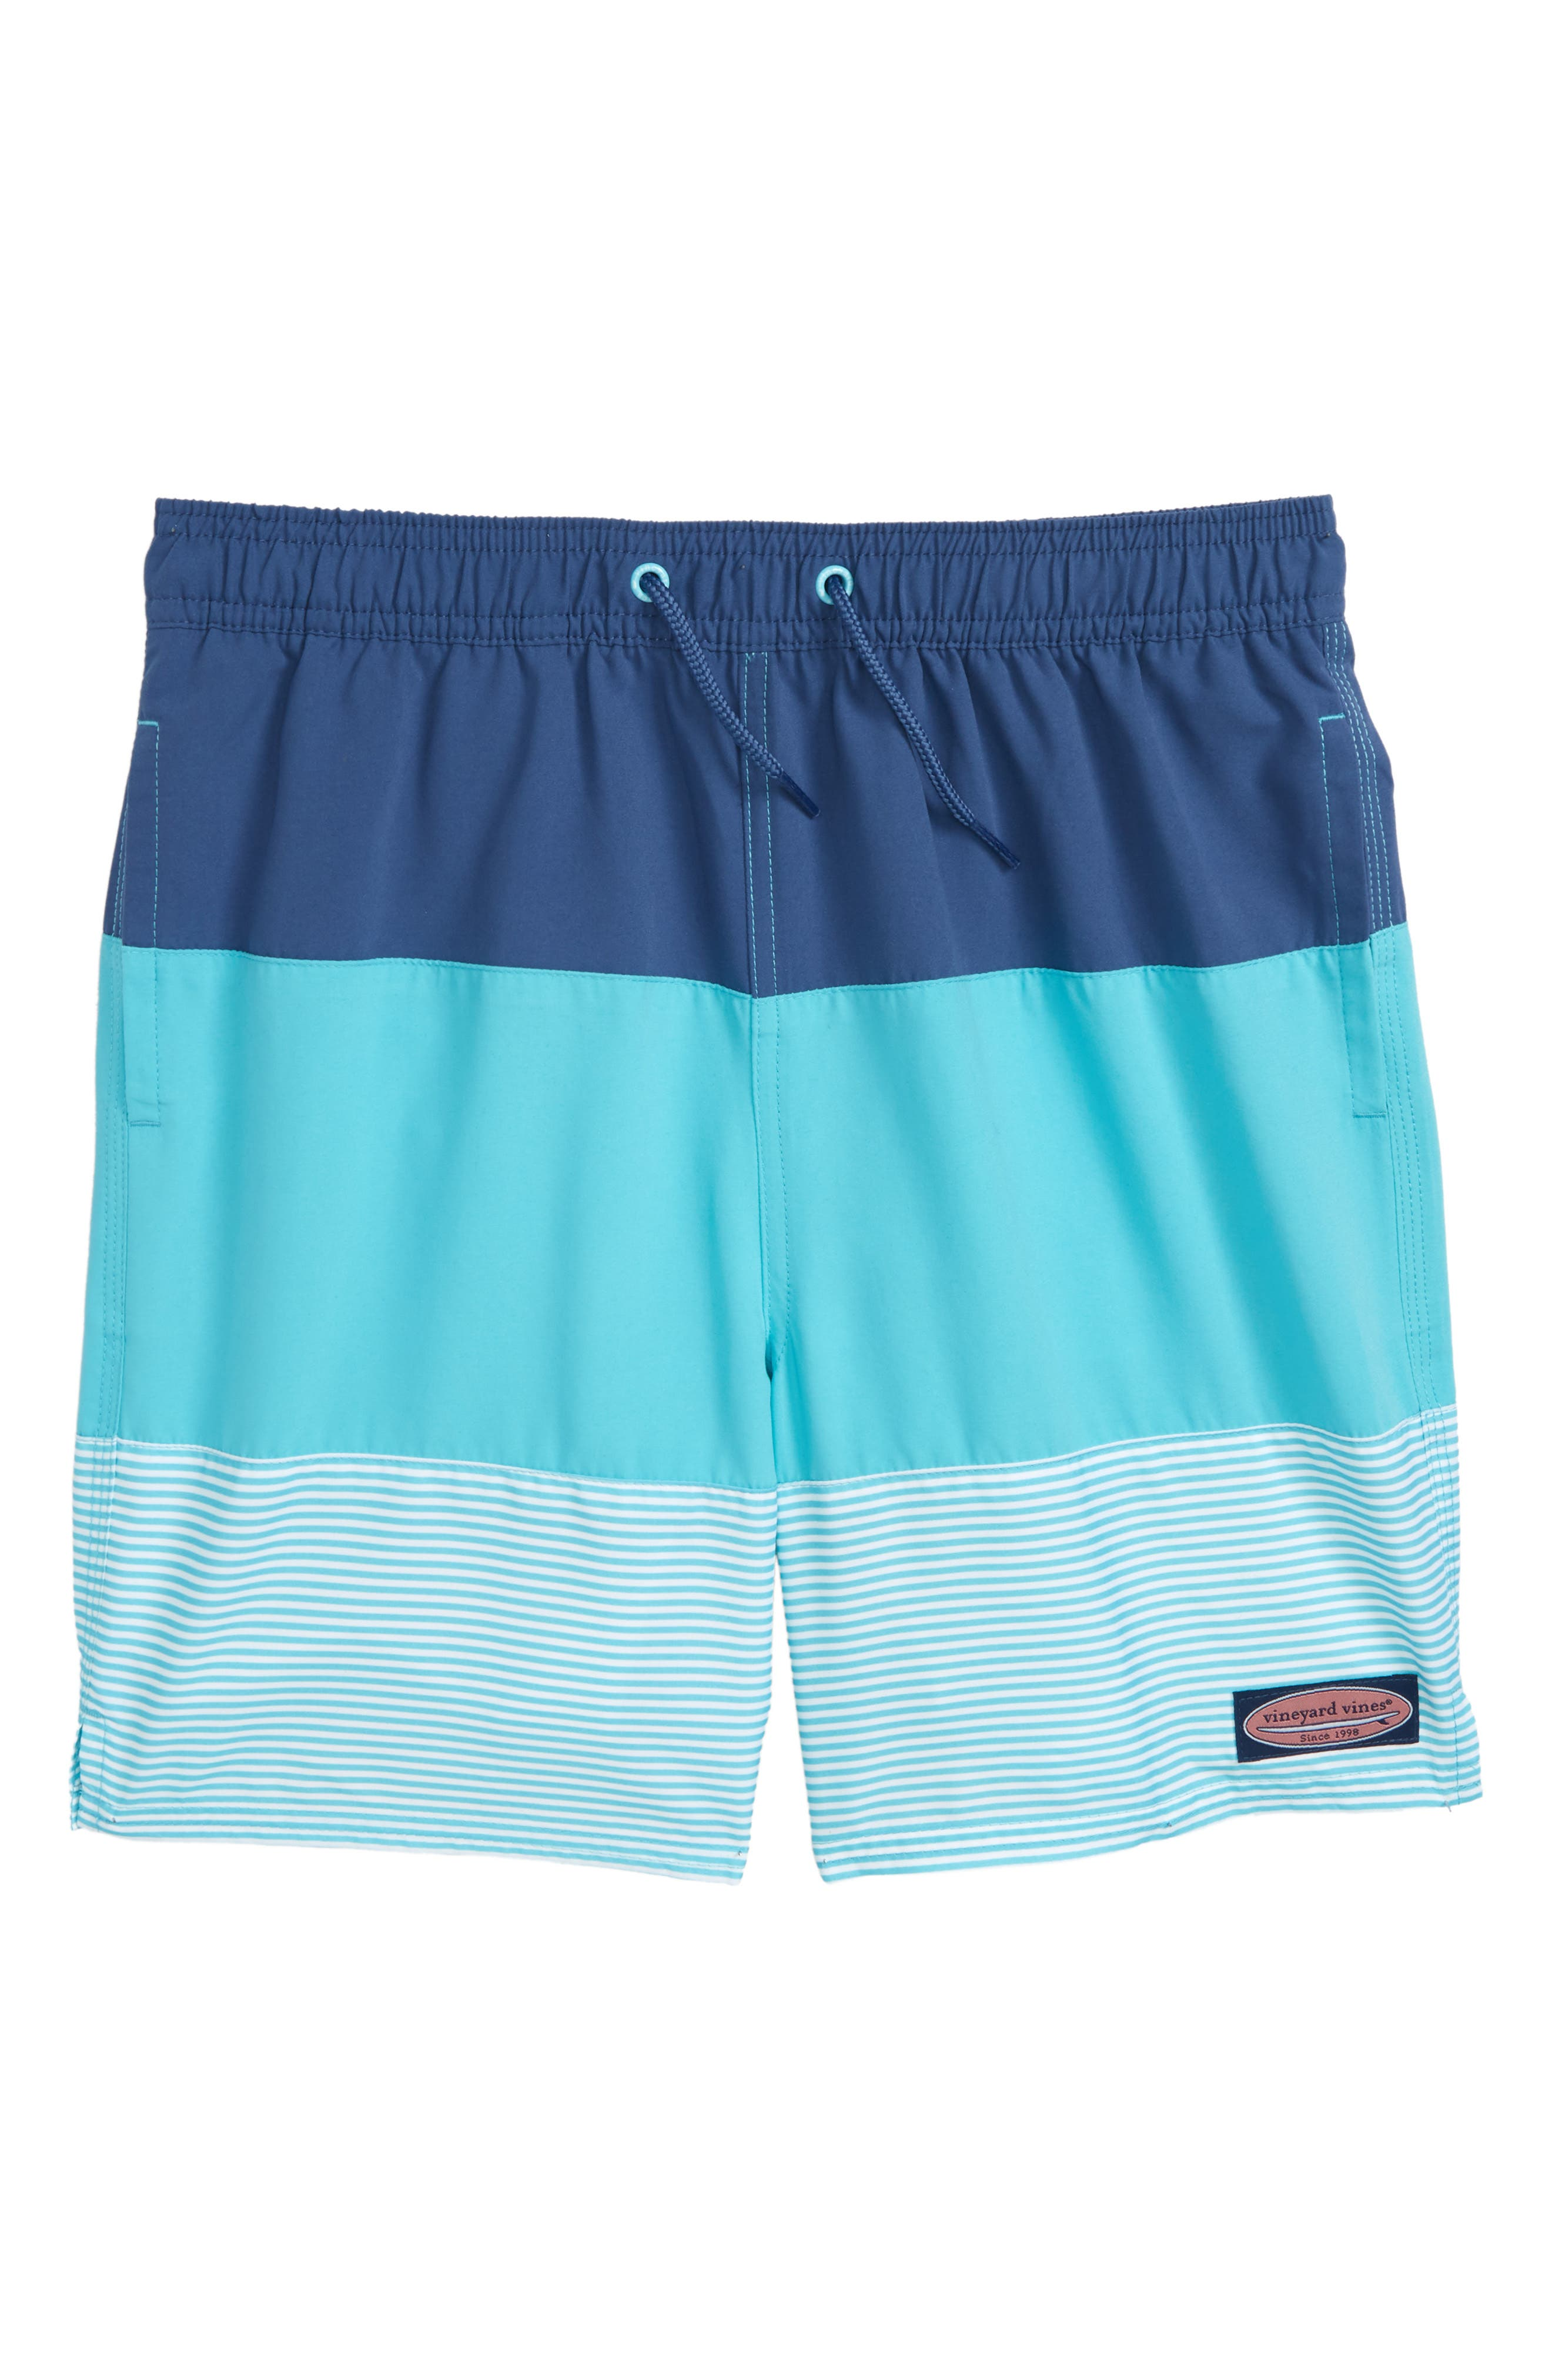 Chappy Pieced Swim Trunks,                             Main thumbnail 1, color,                             Turqs